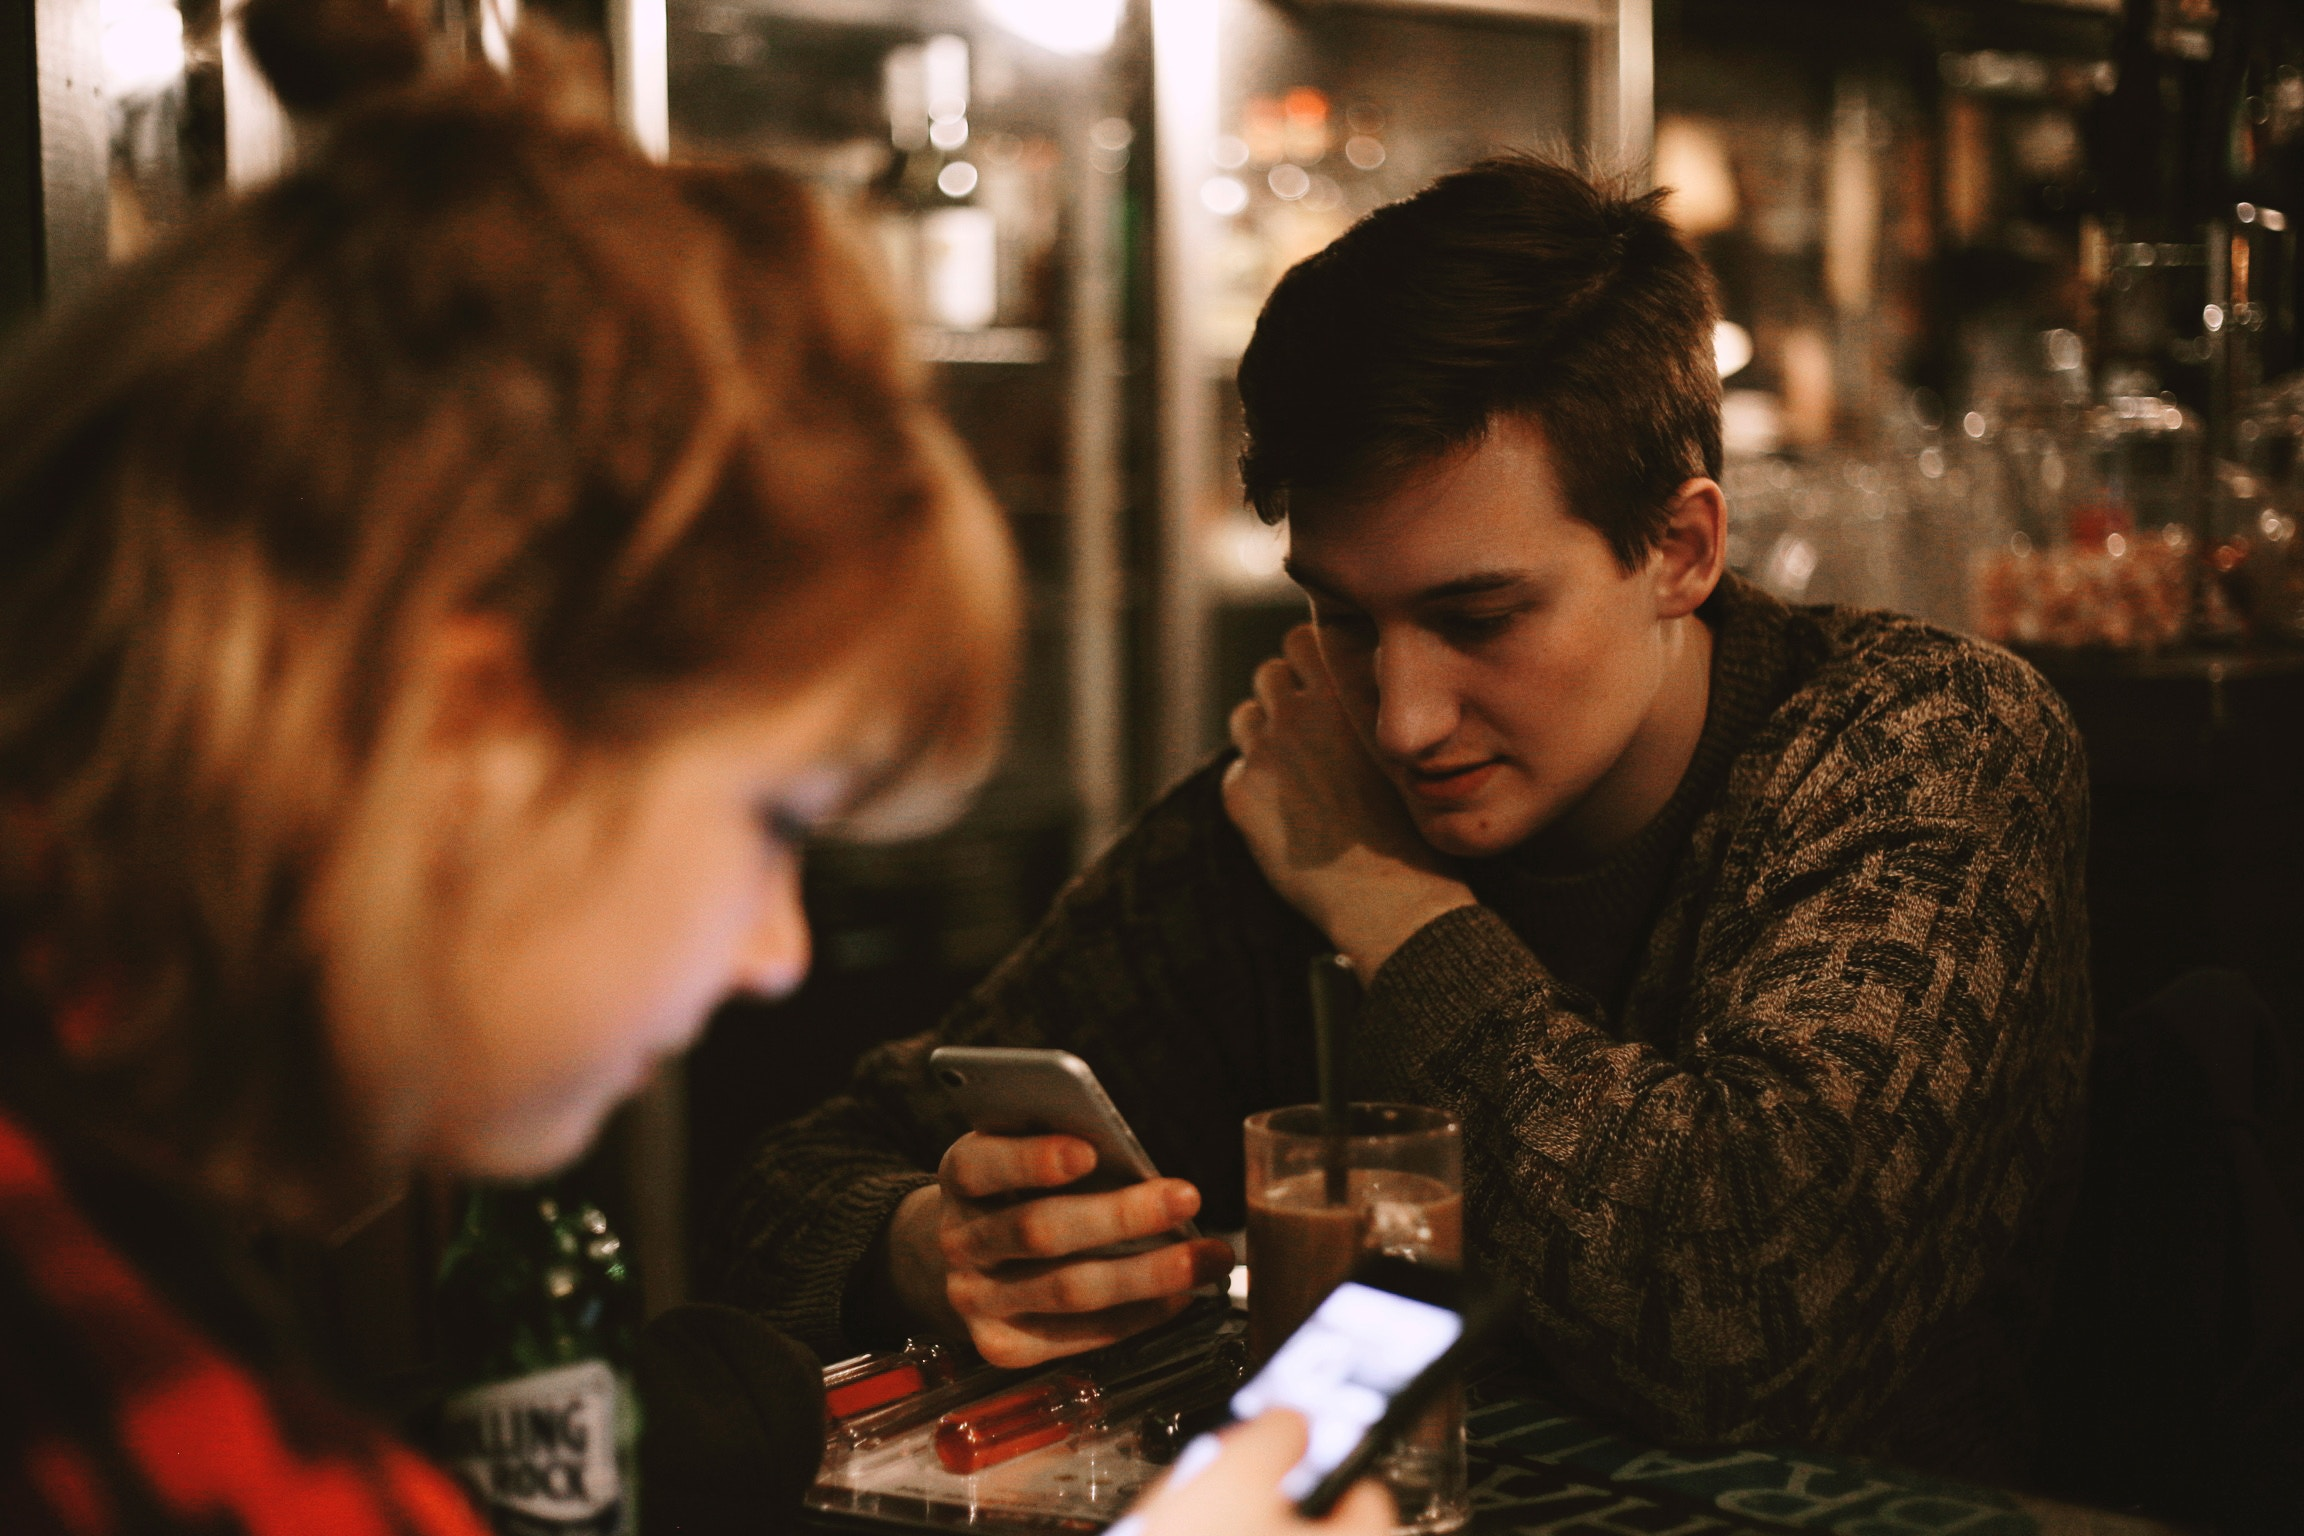 Millennials texting while together